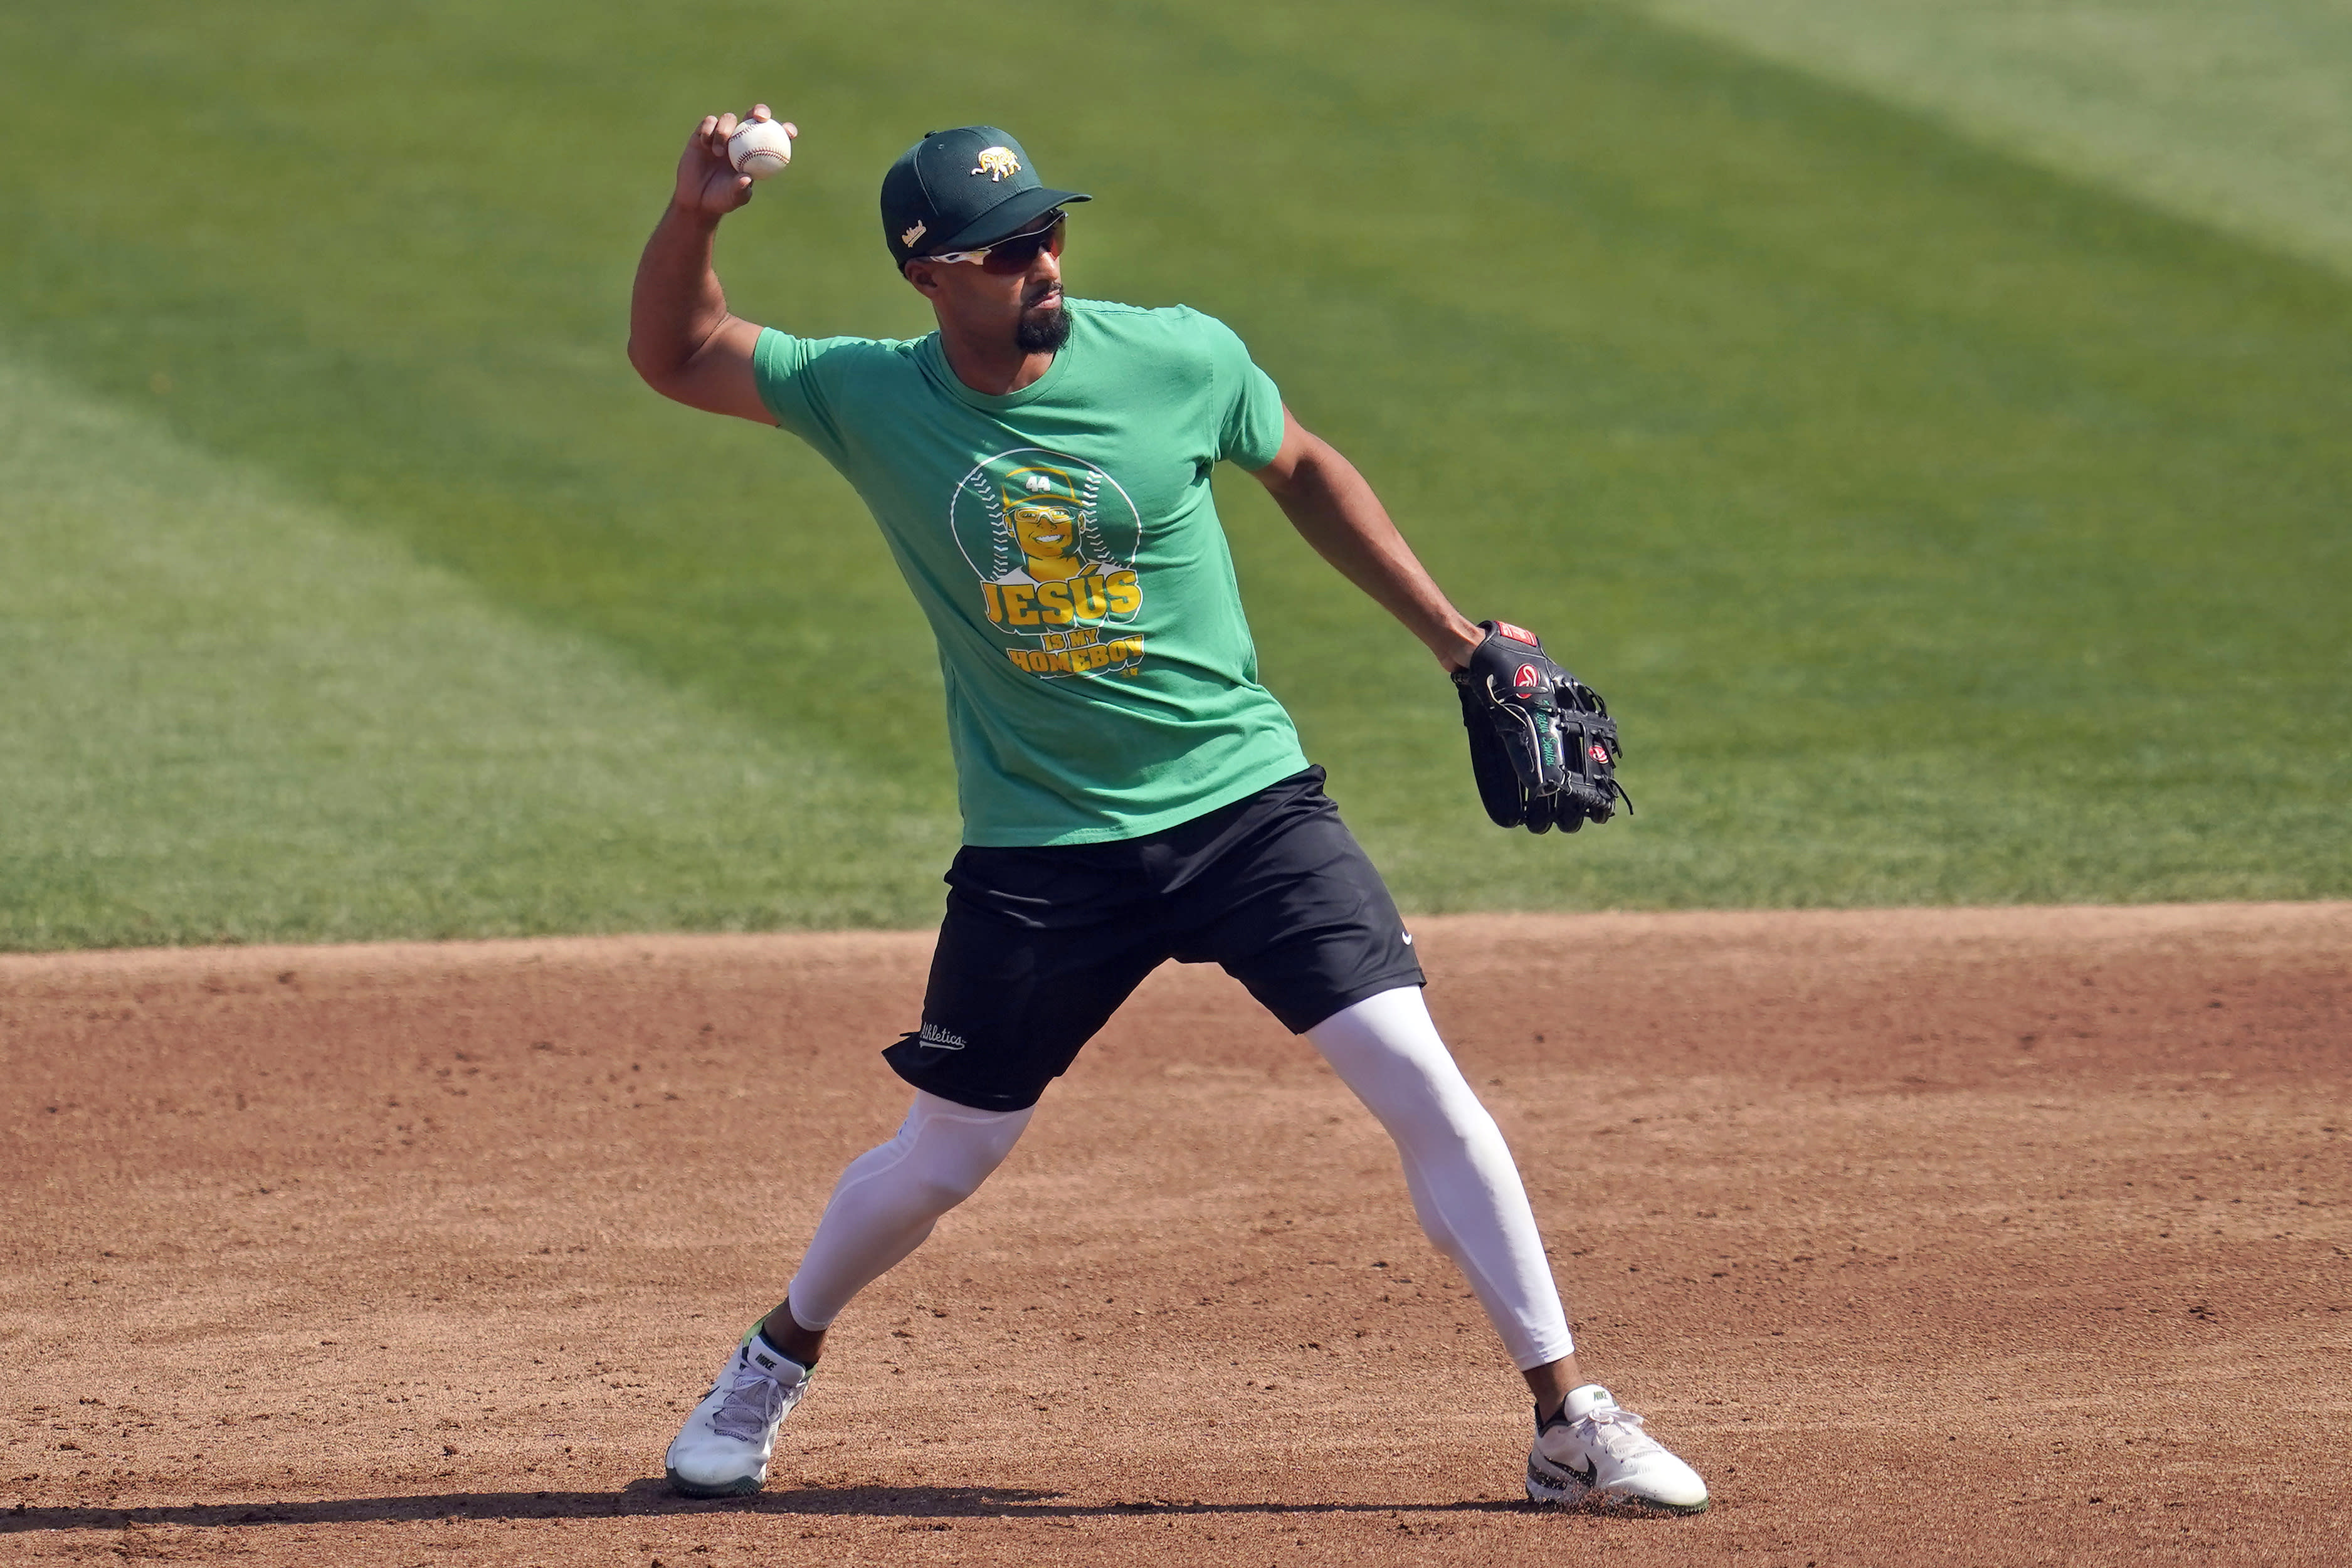 Oakland Athletics' Marcus Semien throws during a baseball workout in Oakland, Calif., Monday, Sept. 28, 2020. The Athletics are scheduled to play the Chicago White Sox in an American League wild-card playoff series starting Tuesday. (AP Photo/Jeff Chiu)